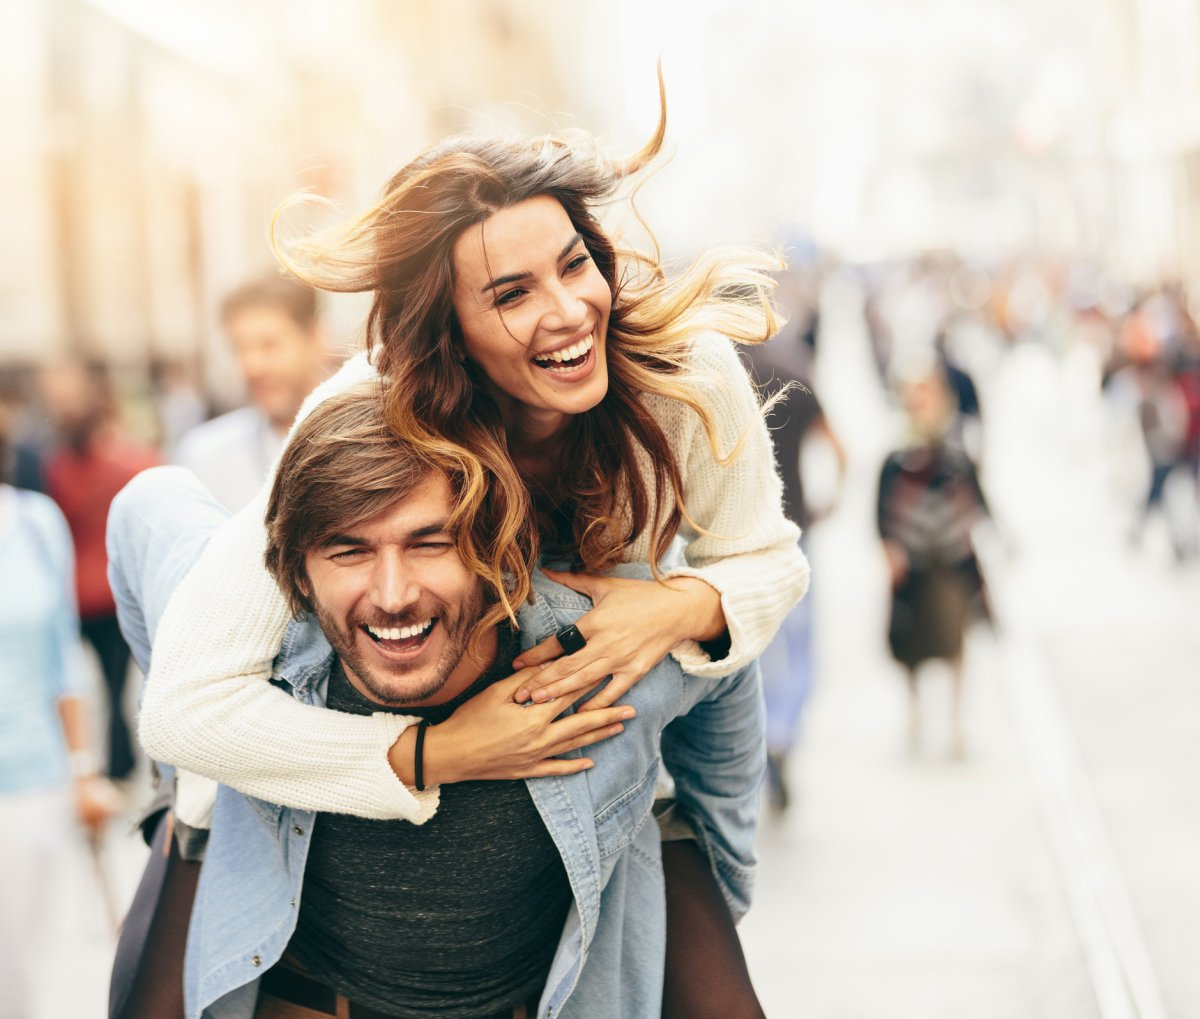 Researchers say love, not money, is what makes people happy.